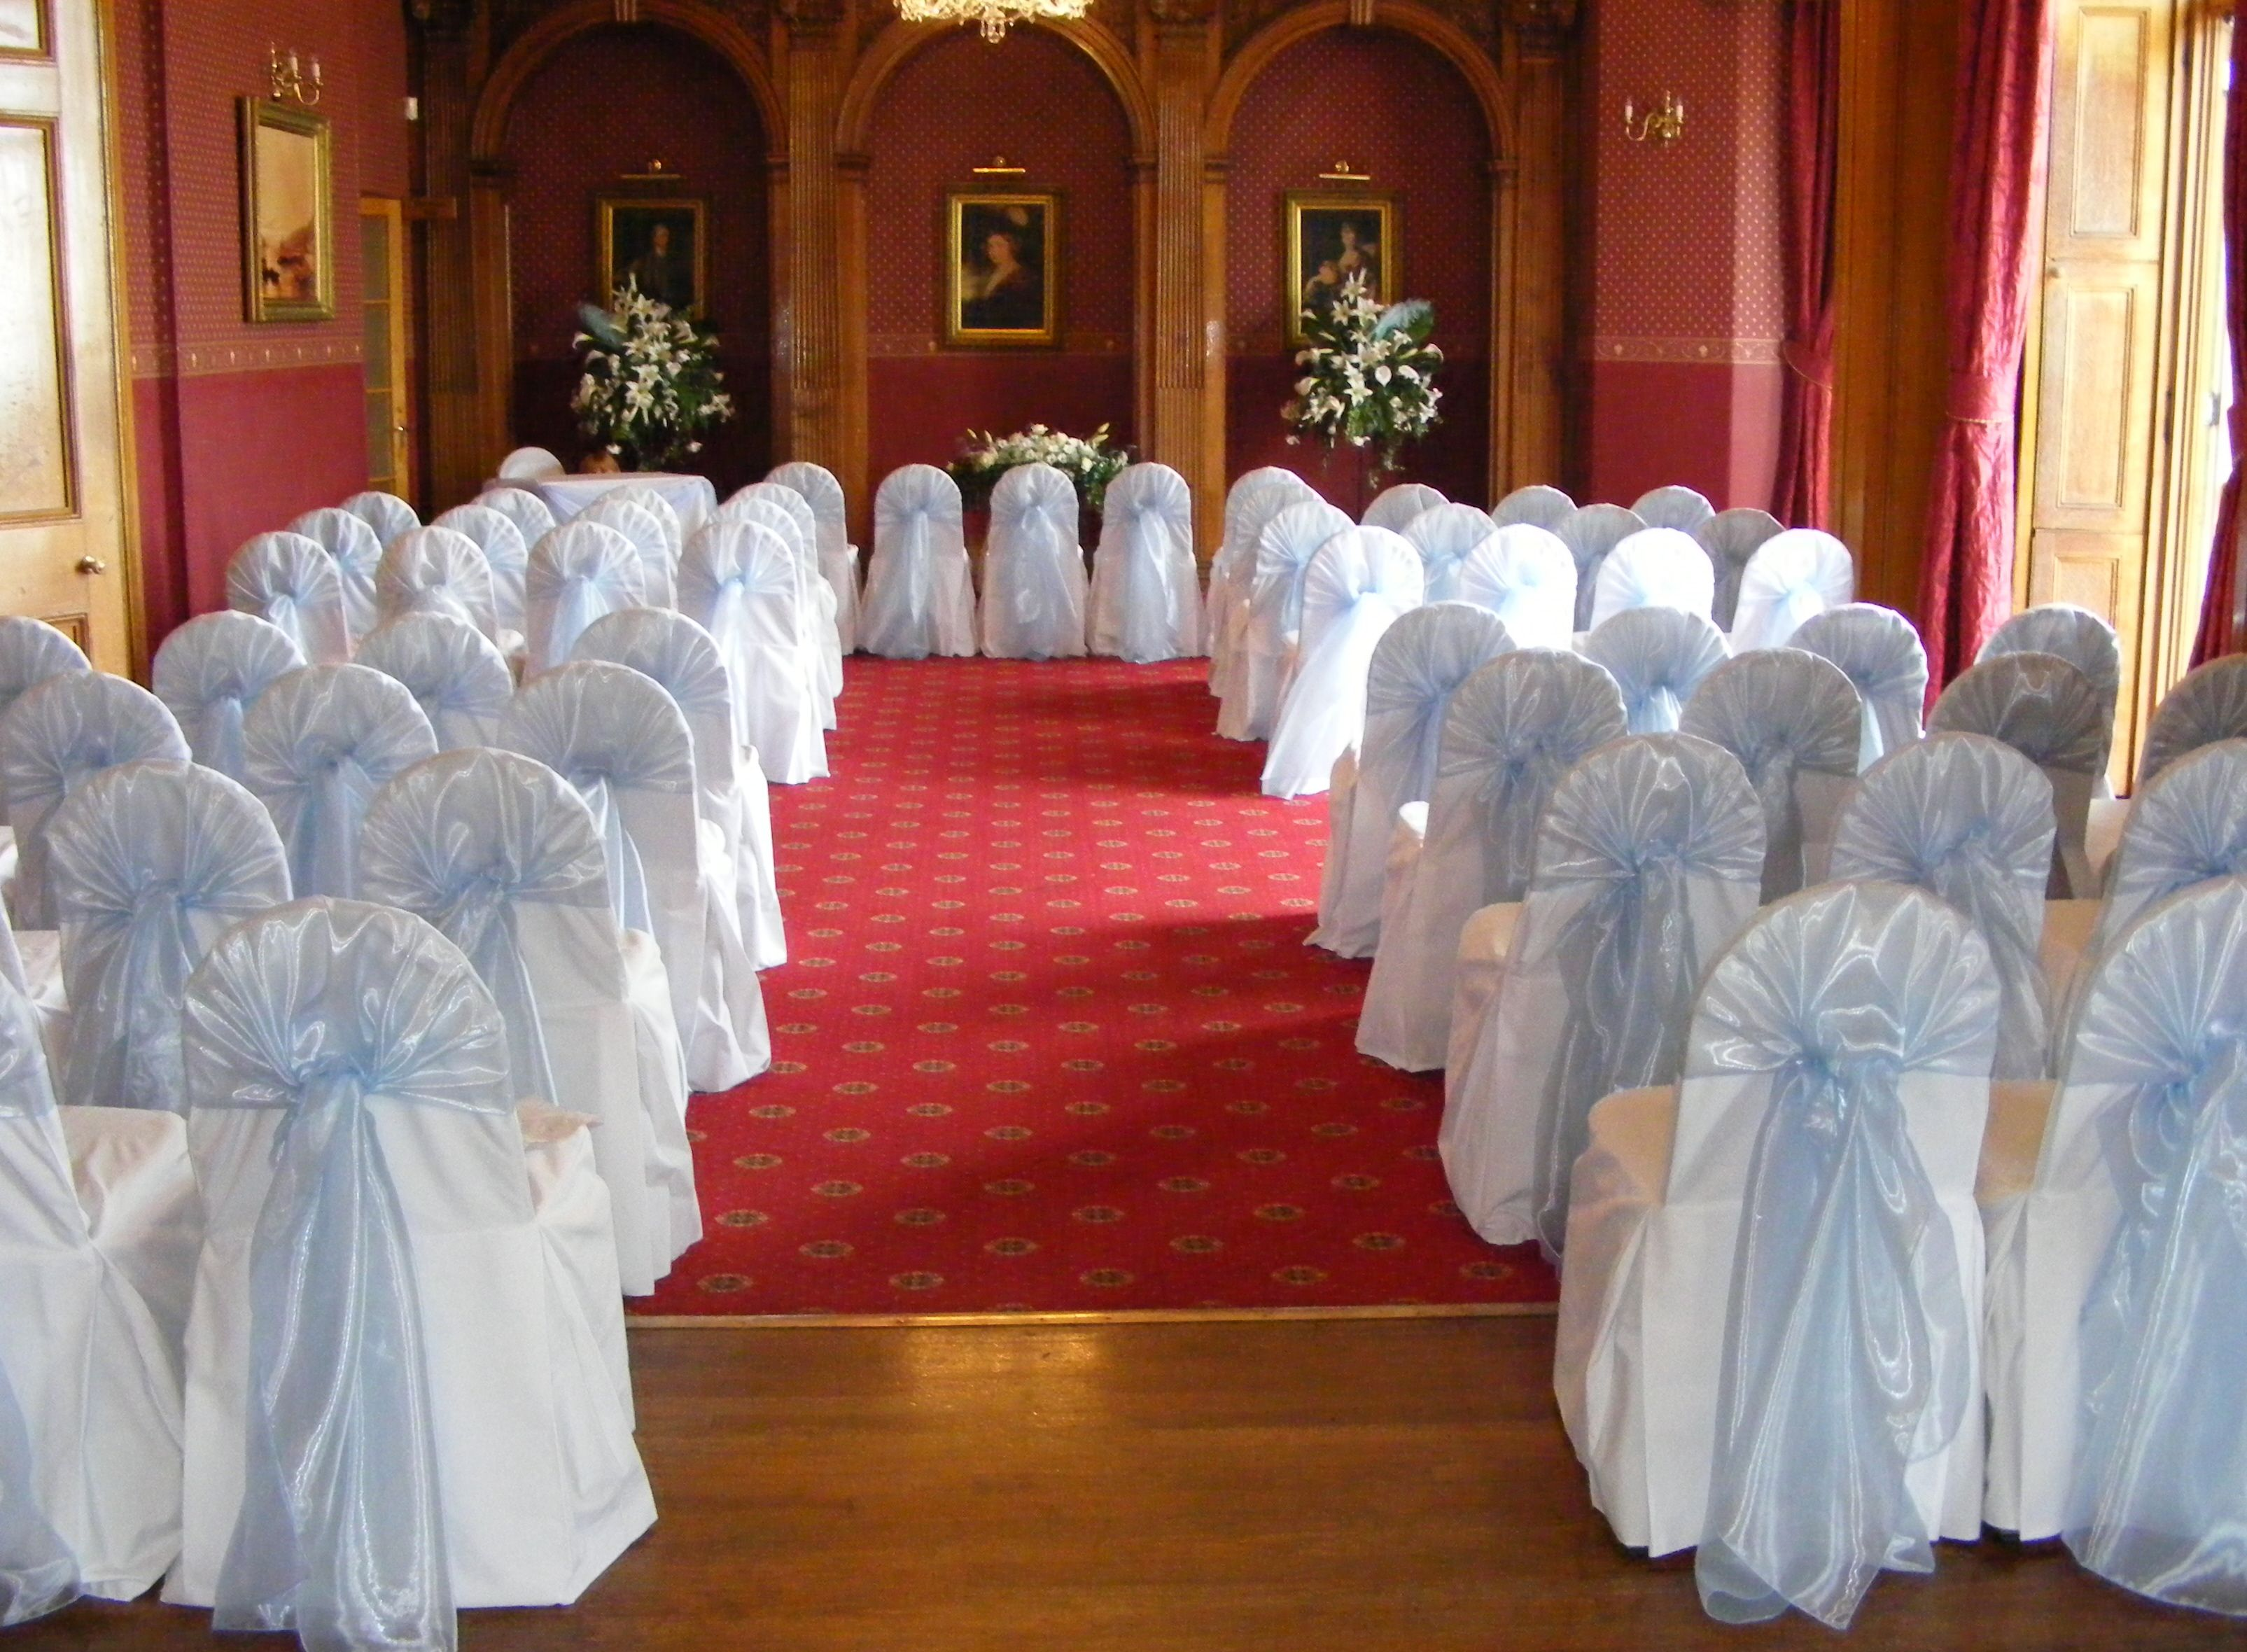 White Cotton Chair Covers With Lovely Ice Blue Hooded Sashes The Grand Ballroom Haigh